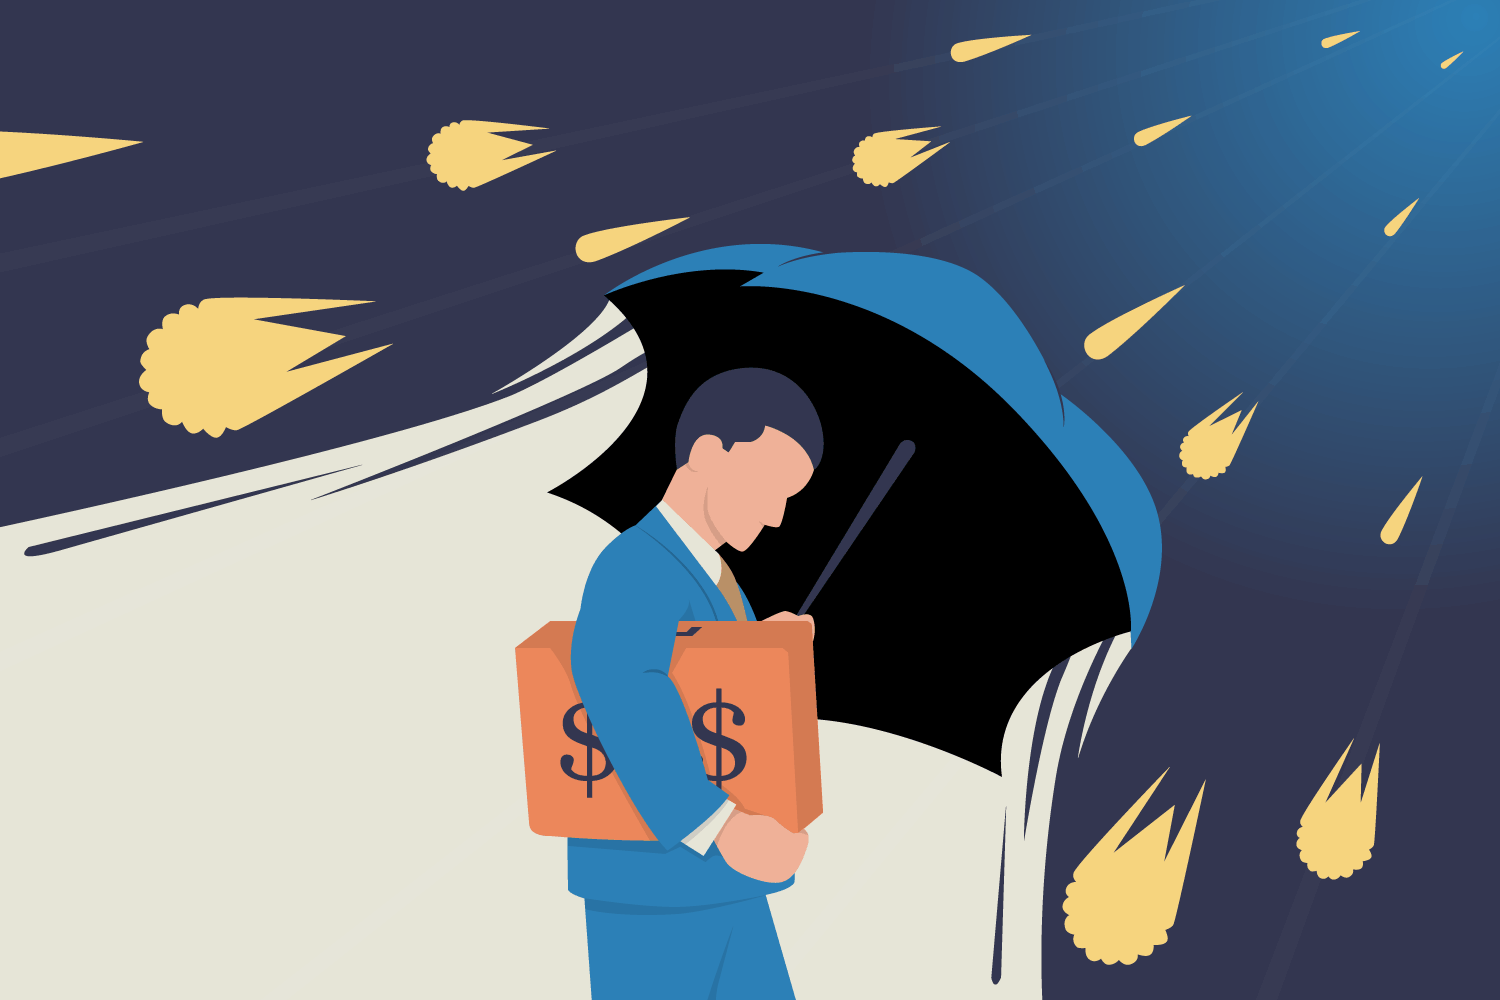 man with umbrella protecting him from falling meteors (illustrating)